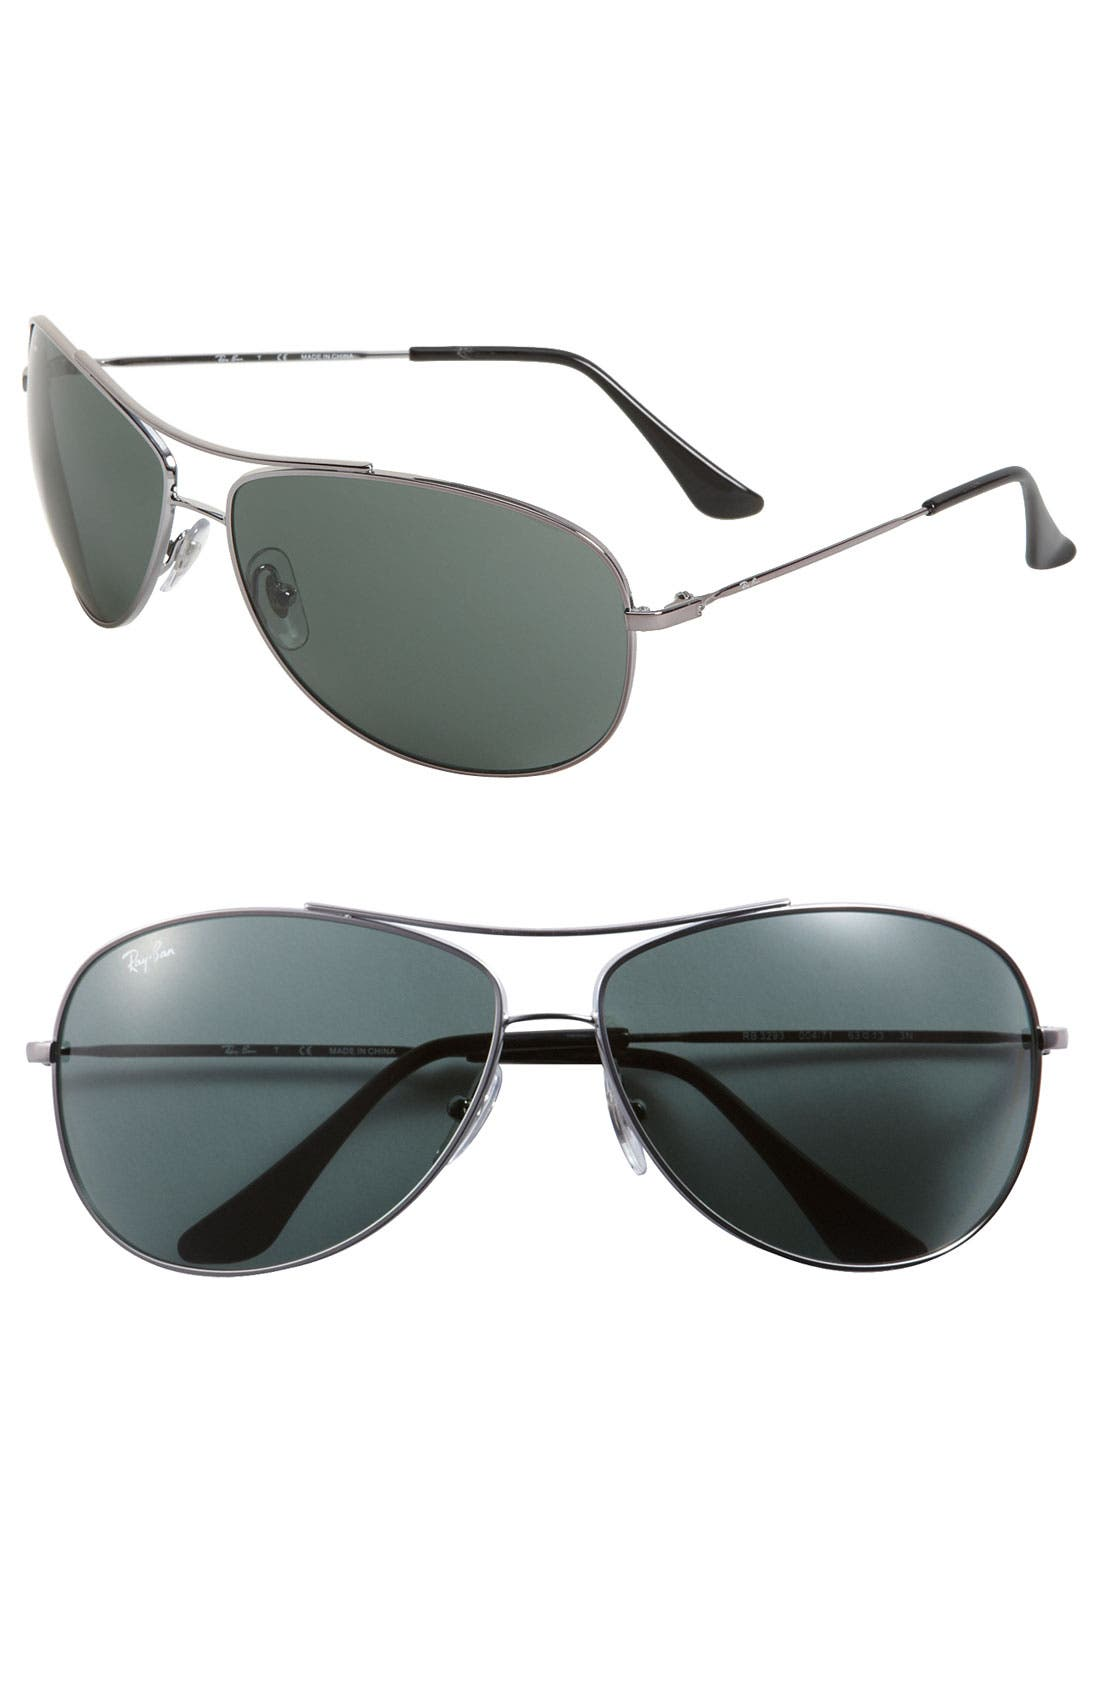 Main Image - Ray-Ban 'Bubble Wrap' 63mm Aviator Sunglasses